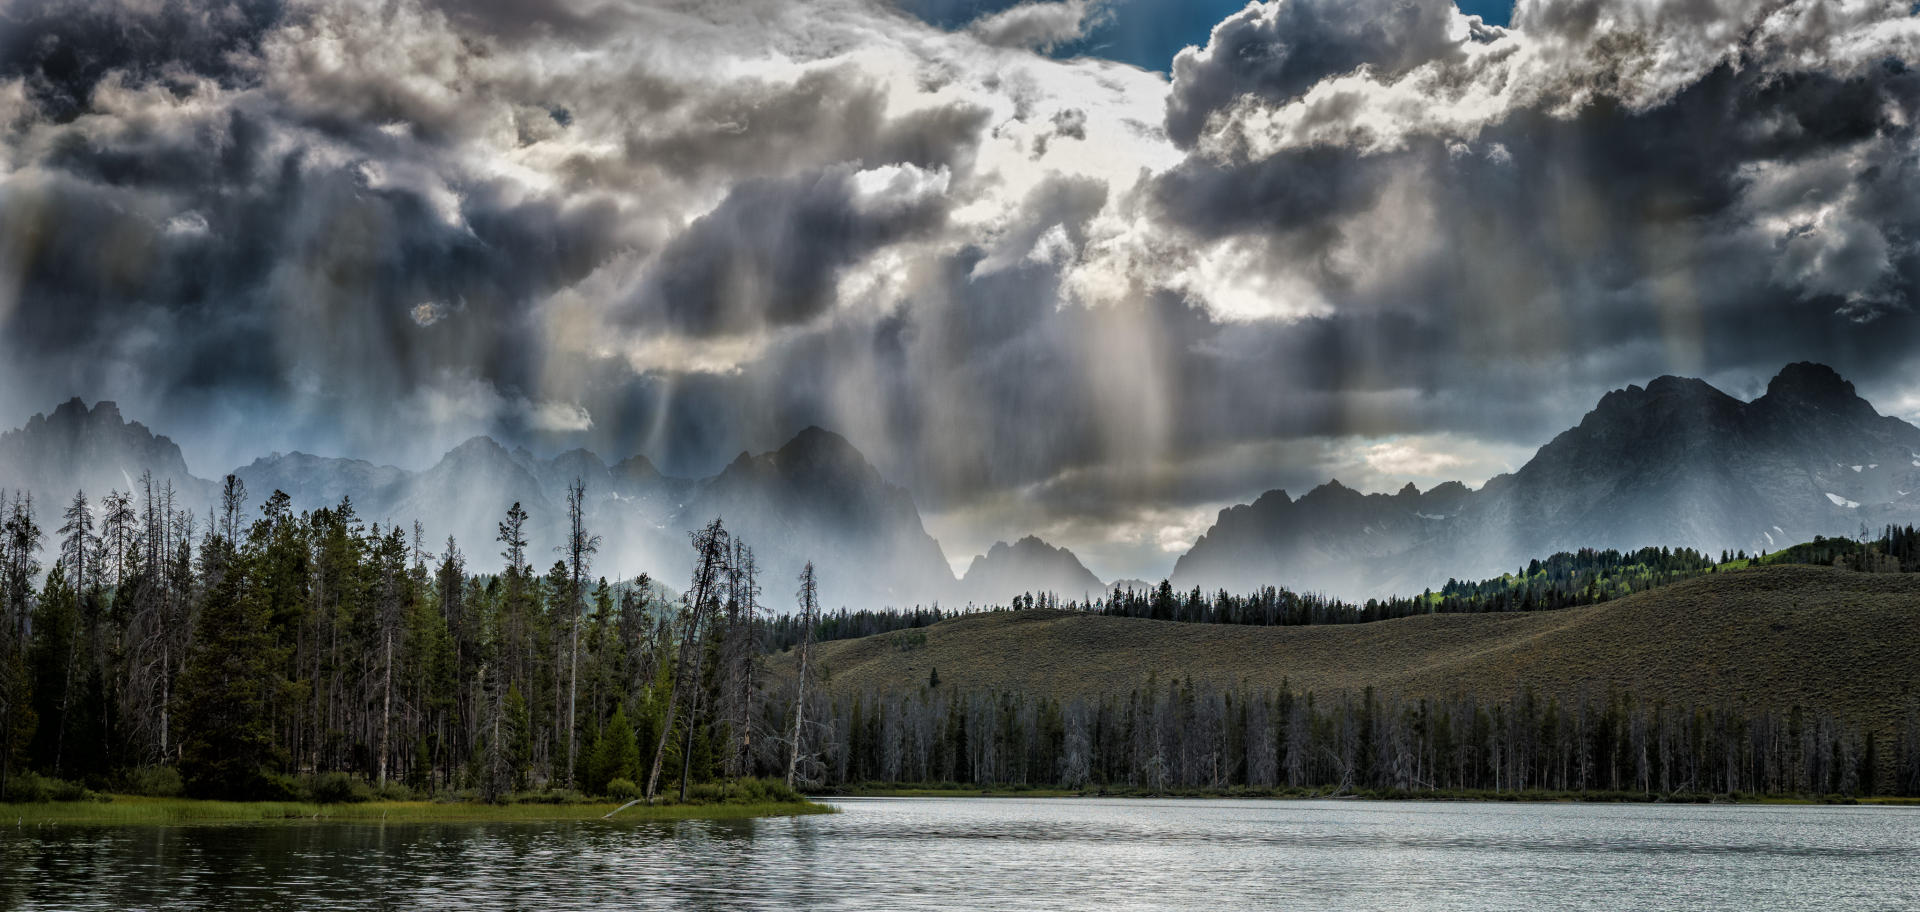 Landscapes::TIMOTHY FLOYD PHOTOGRAPHER, NATURE PHOTOGRAPHY